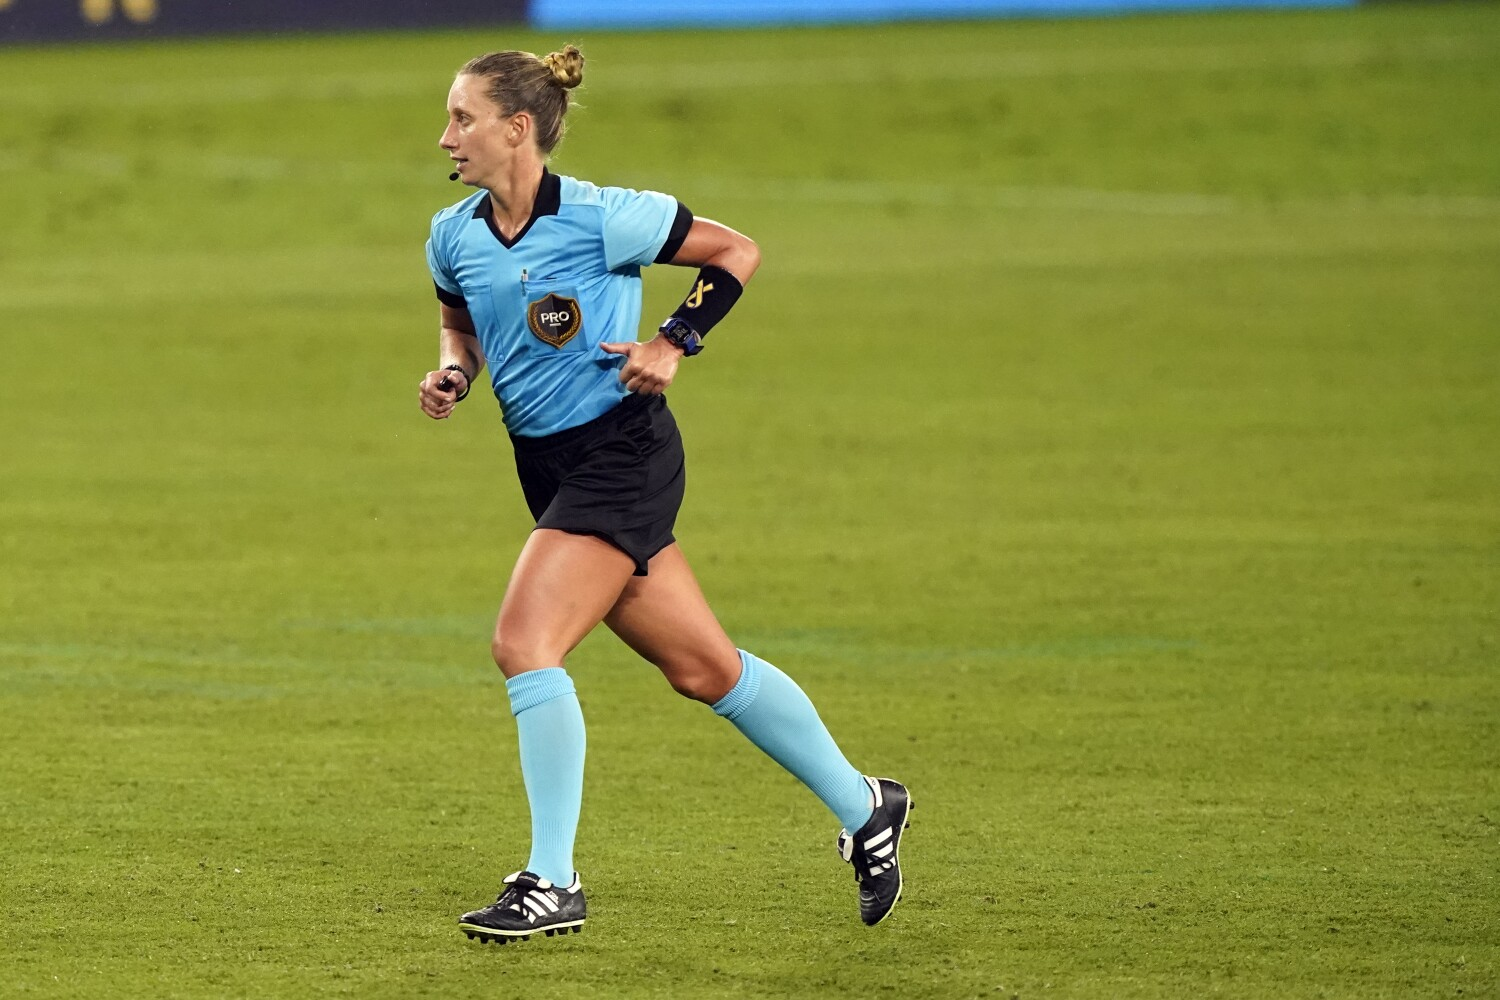 MLS referee Tori Penso controls the game and inspires others